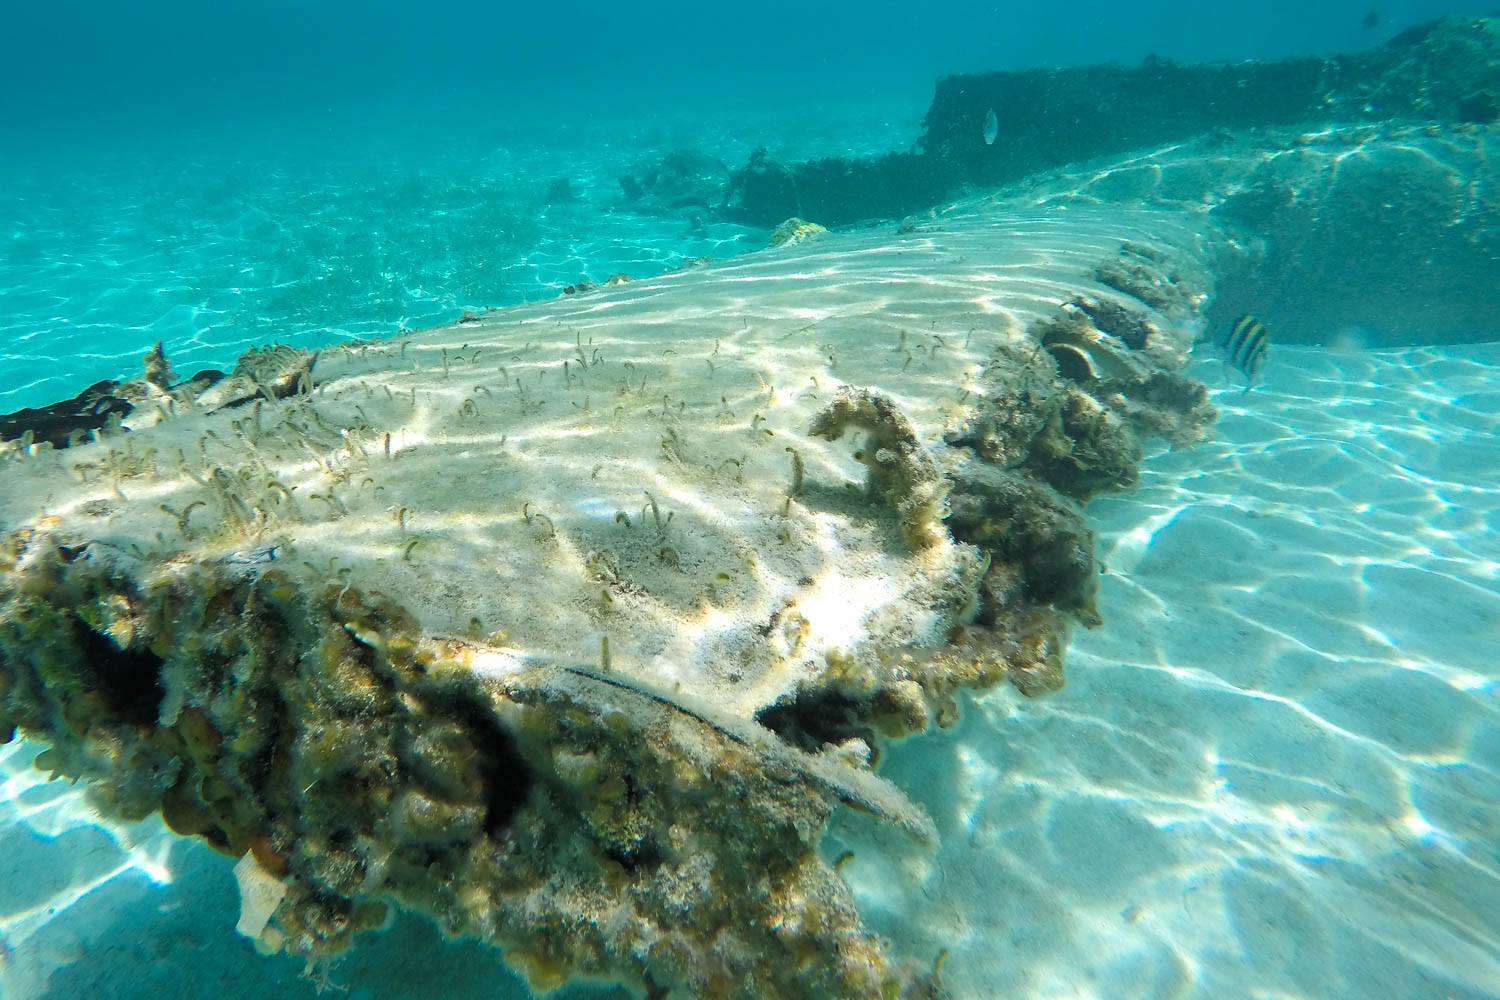 Bahamas underwater plane wreck at Staniel Cay Exuma. This intriguing Bahamas Plane Wreck is a twin engined beechcraft plane that crashed in the 1970 drug running at night.